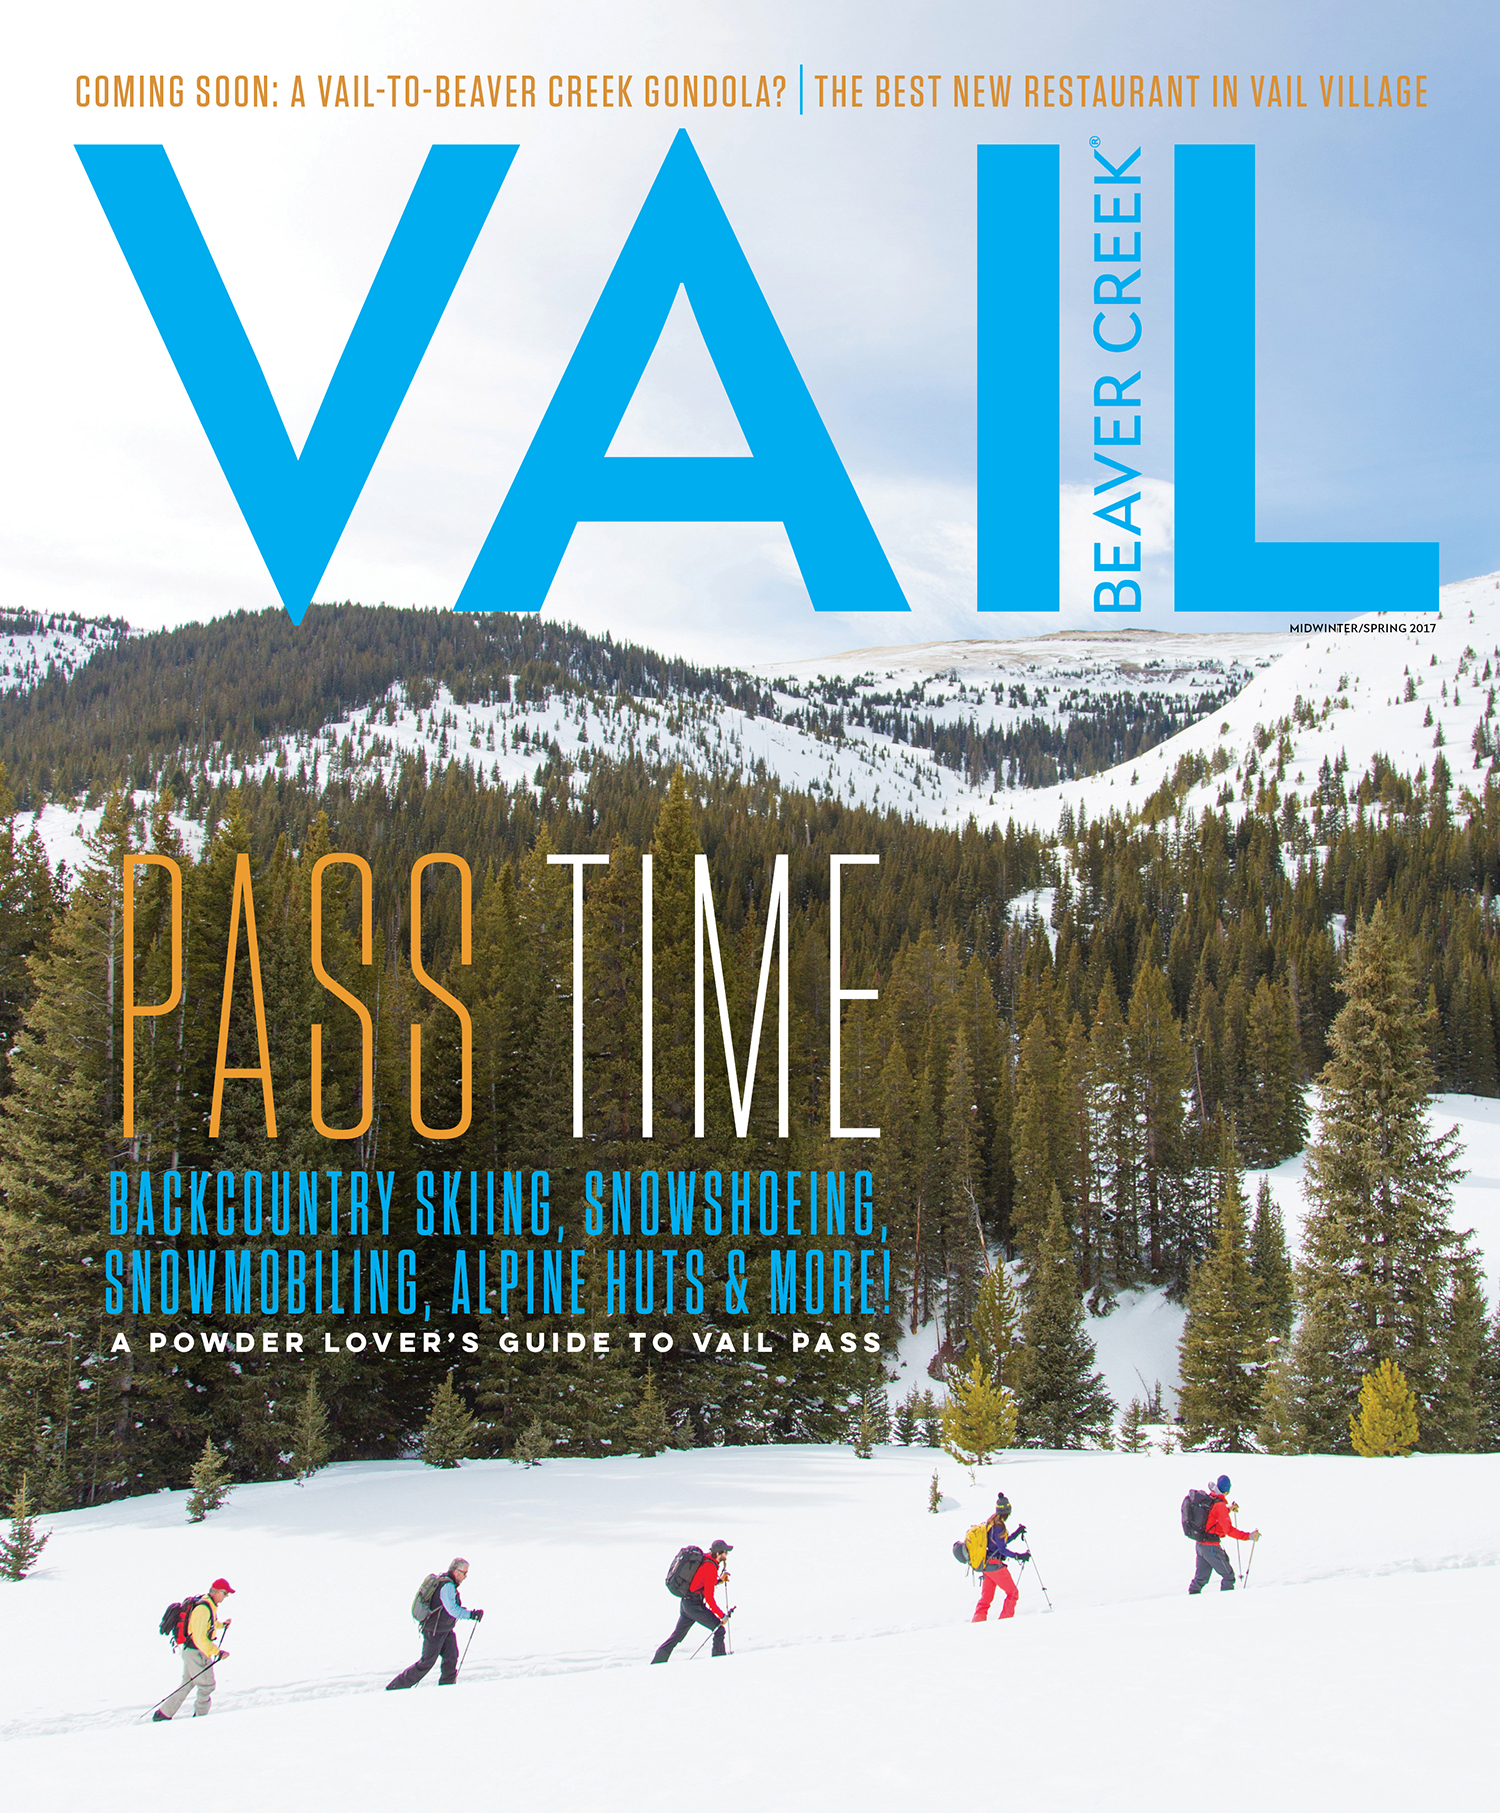 Vail_cover_1.jpg